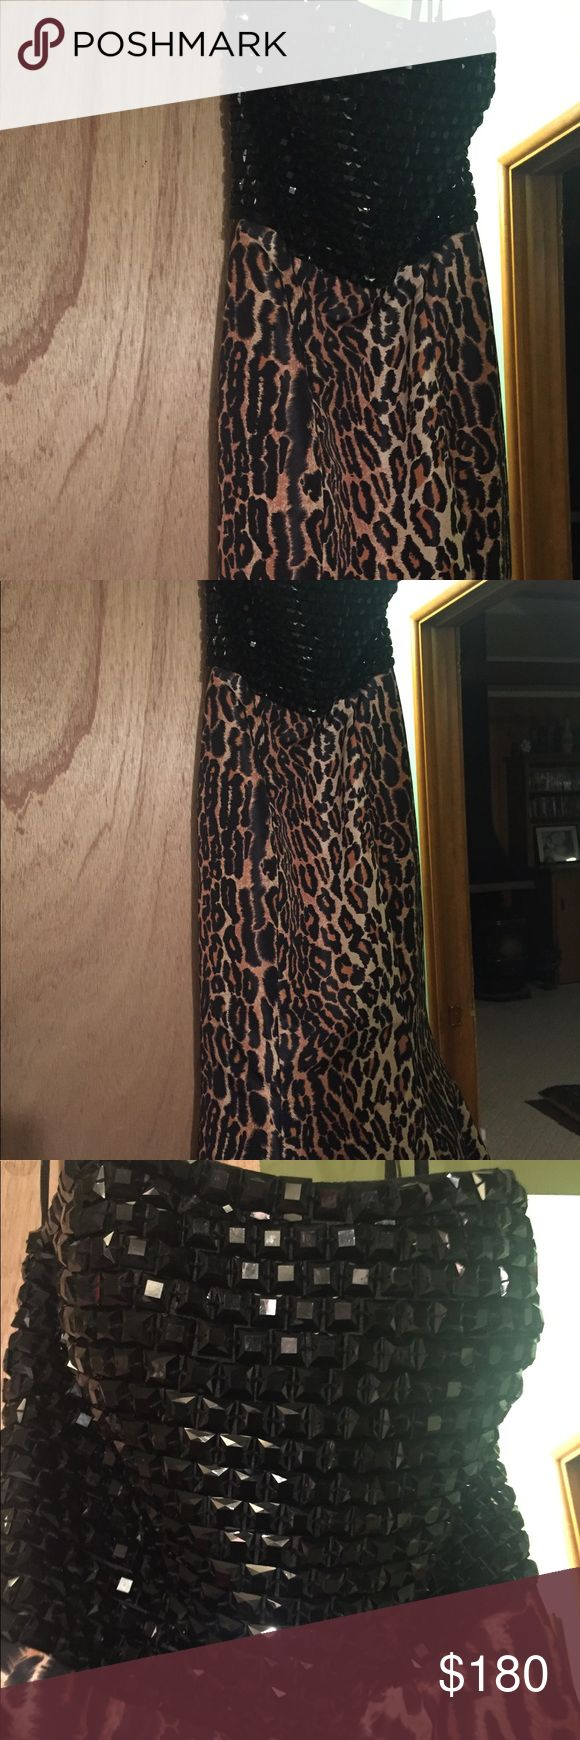 Sherri Hill leopard print sample gown Amazing Sherri Hill gown! Leopard print with black beading- strapless new with tag- size 0. Own a Sherri Hill for a fraction of the price! Sherri Hill Dresses Prom